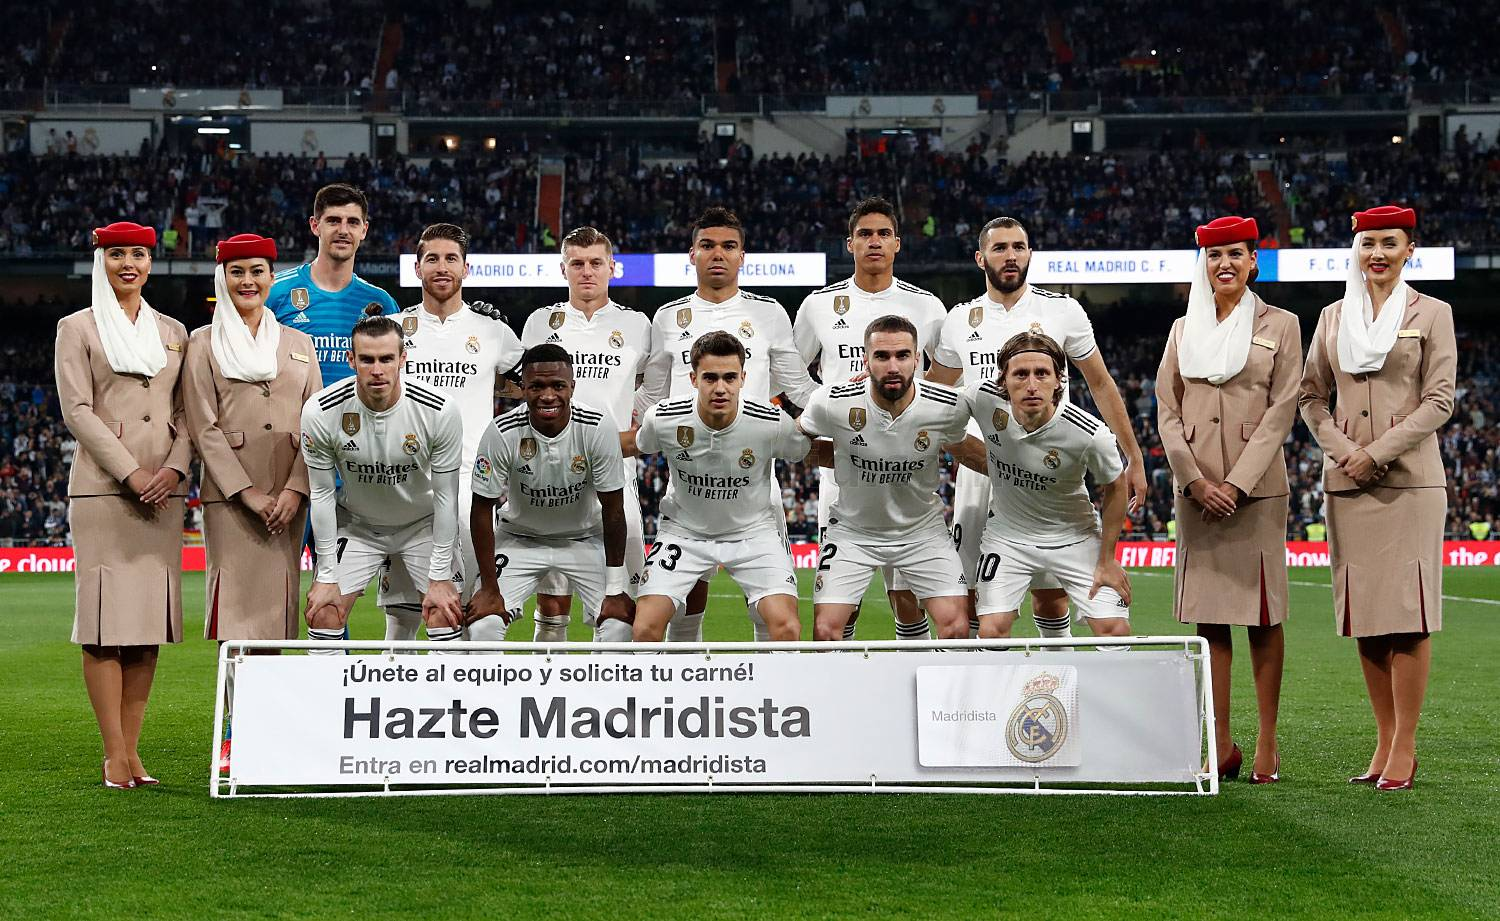 Real Madrid - Real Madrid - Barcelona - 02-03-2019